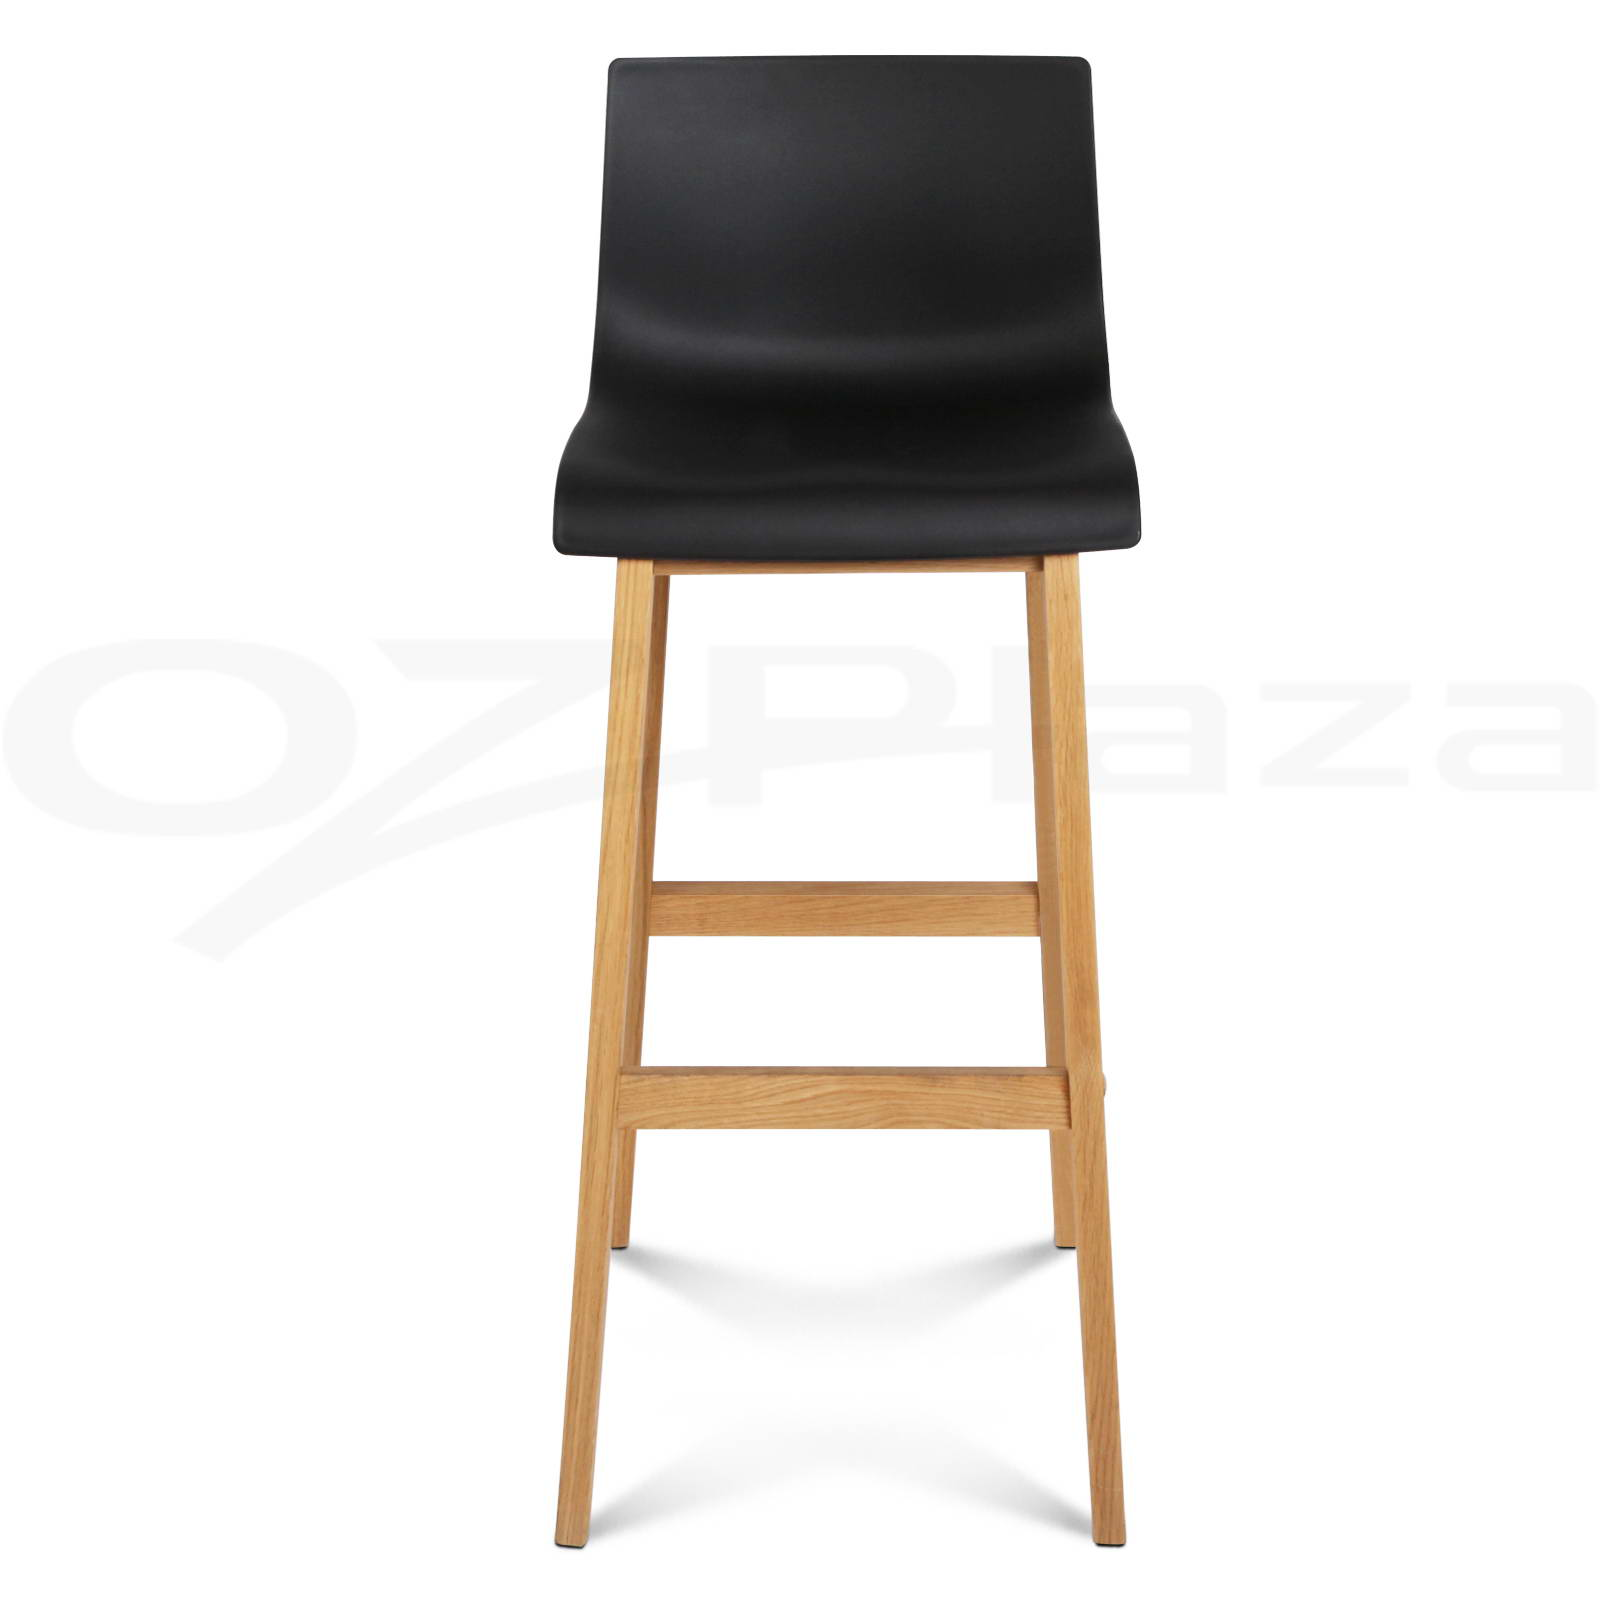 2x Oak Wood Bar Stools Wooden Barstool Dining Chairs Kitchen Plywood Black 36